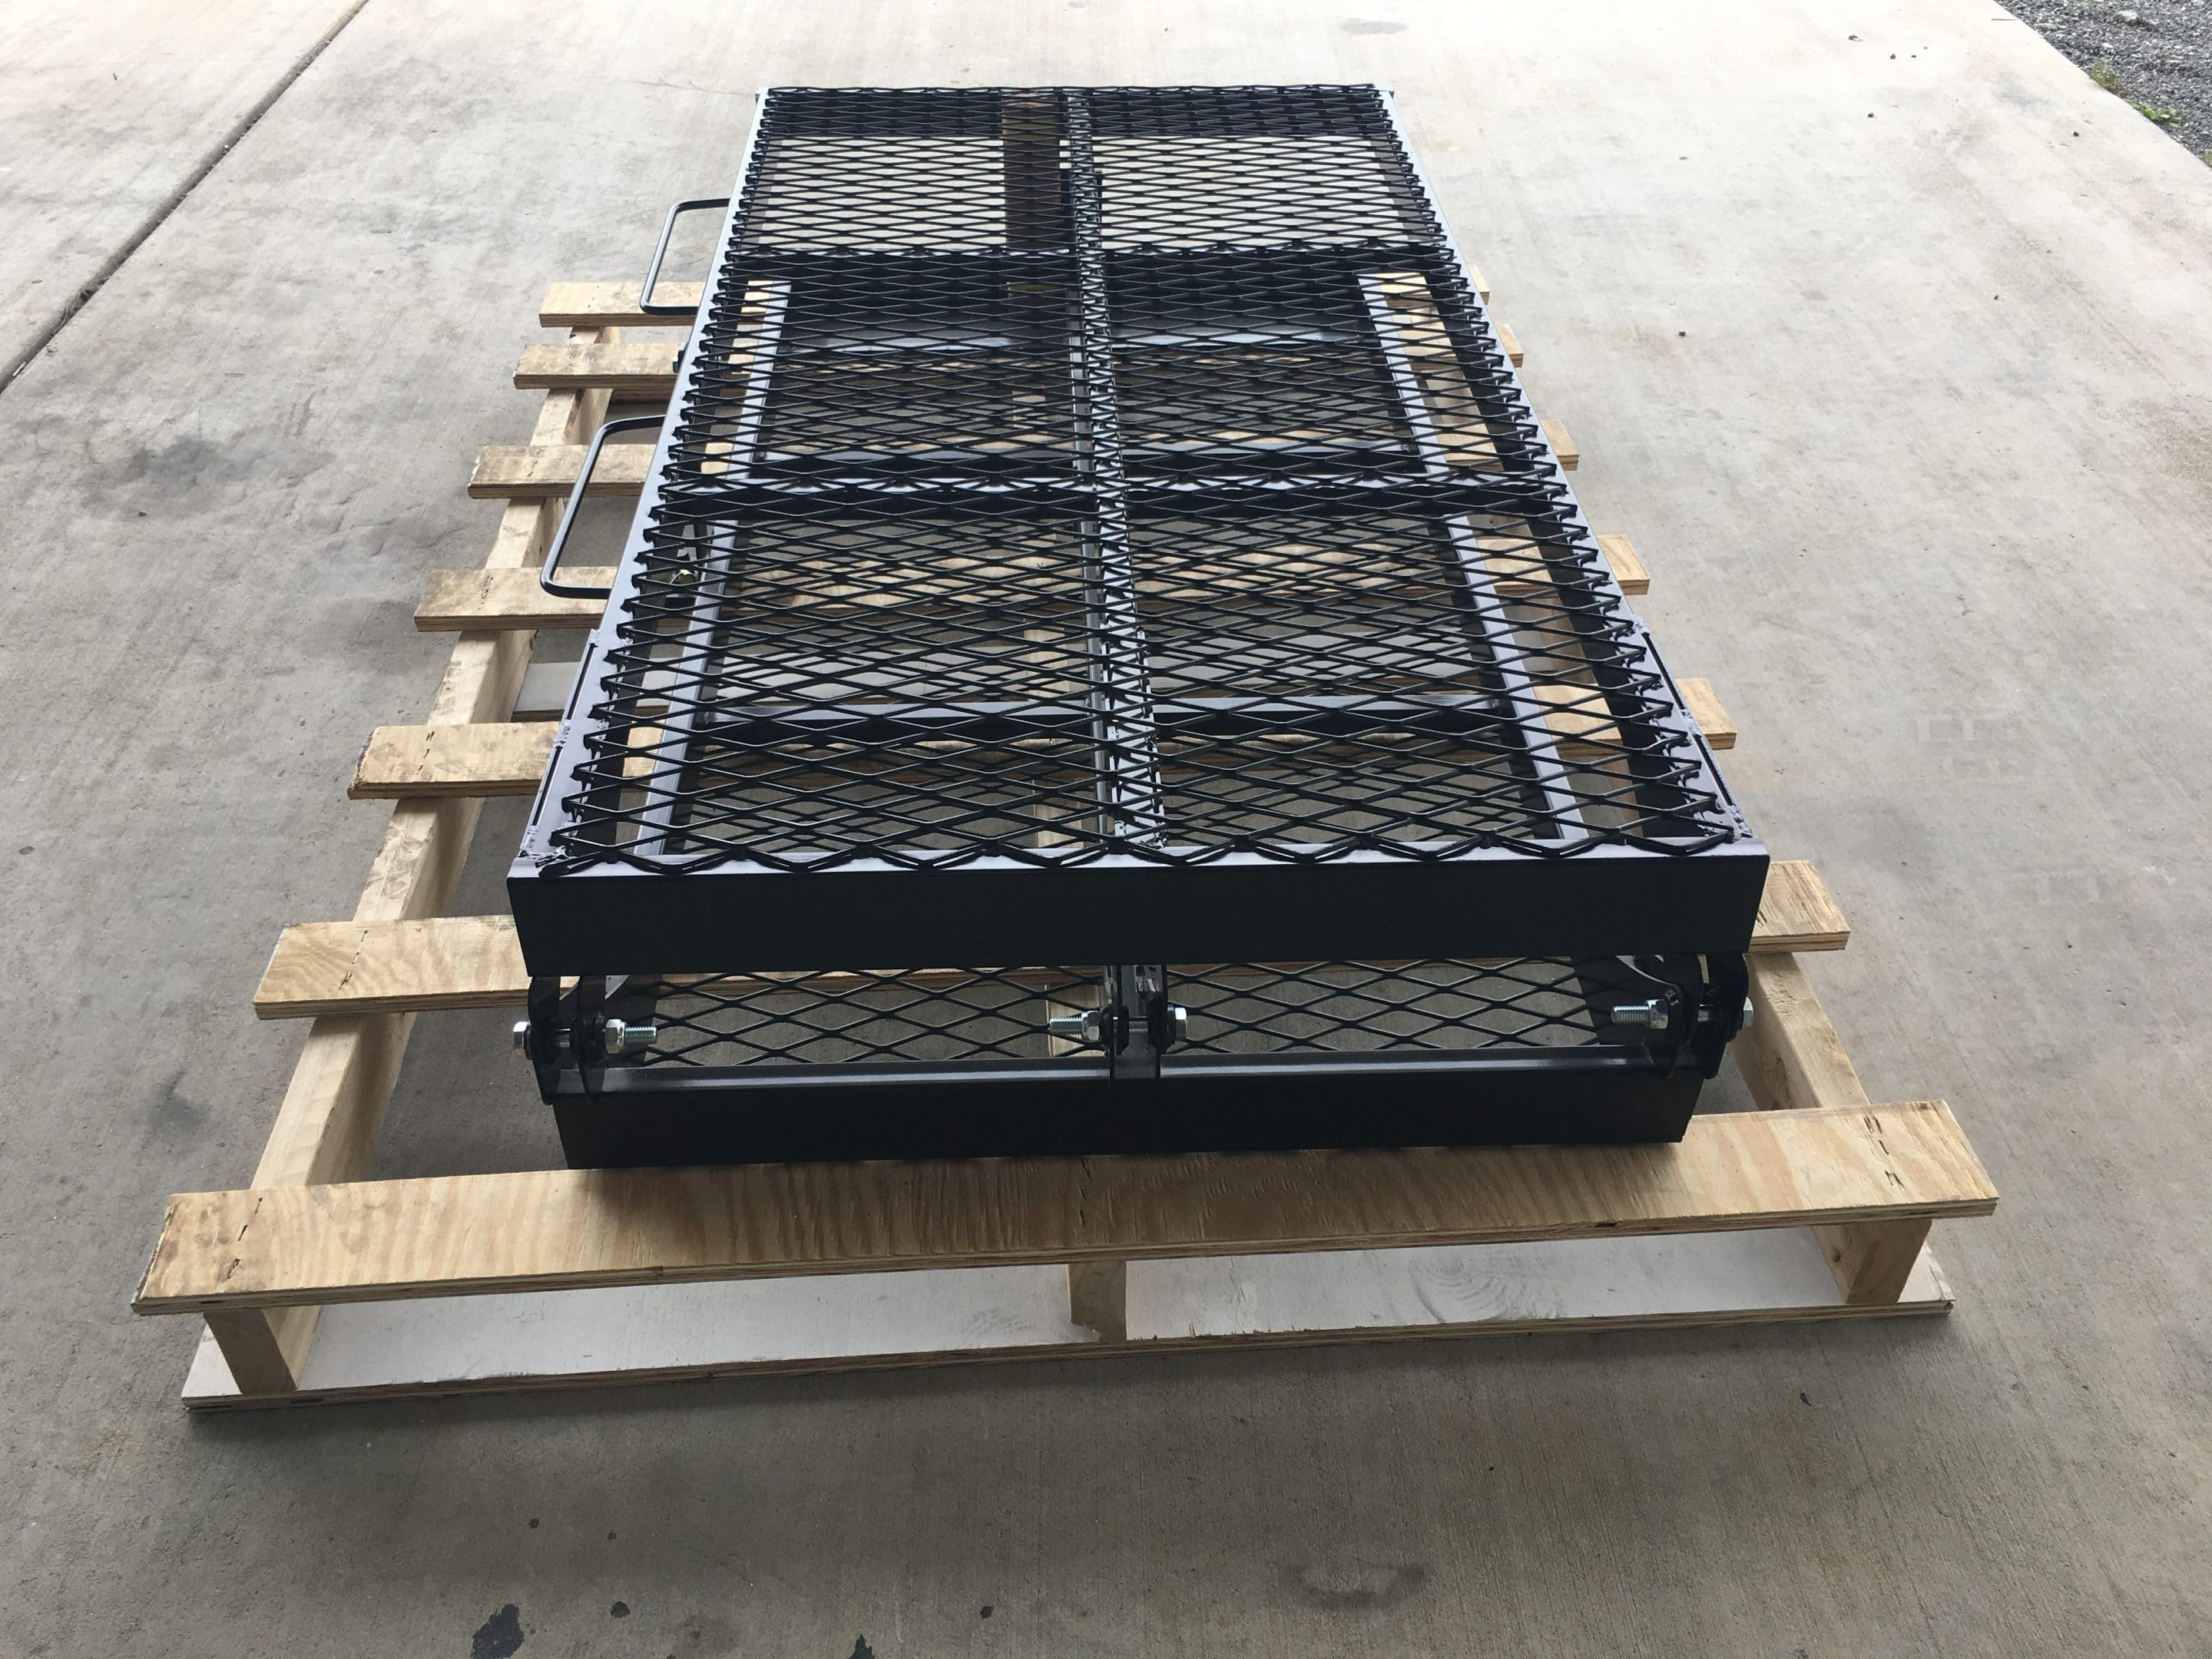 MR-550 – Manual Loading Ramp